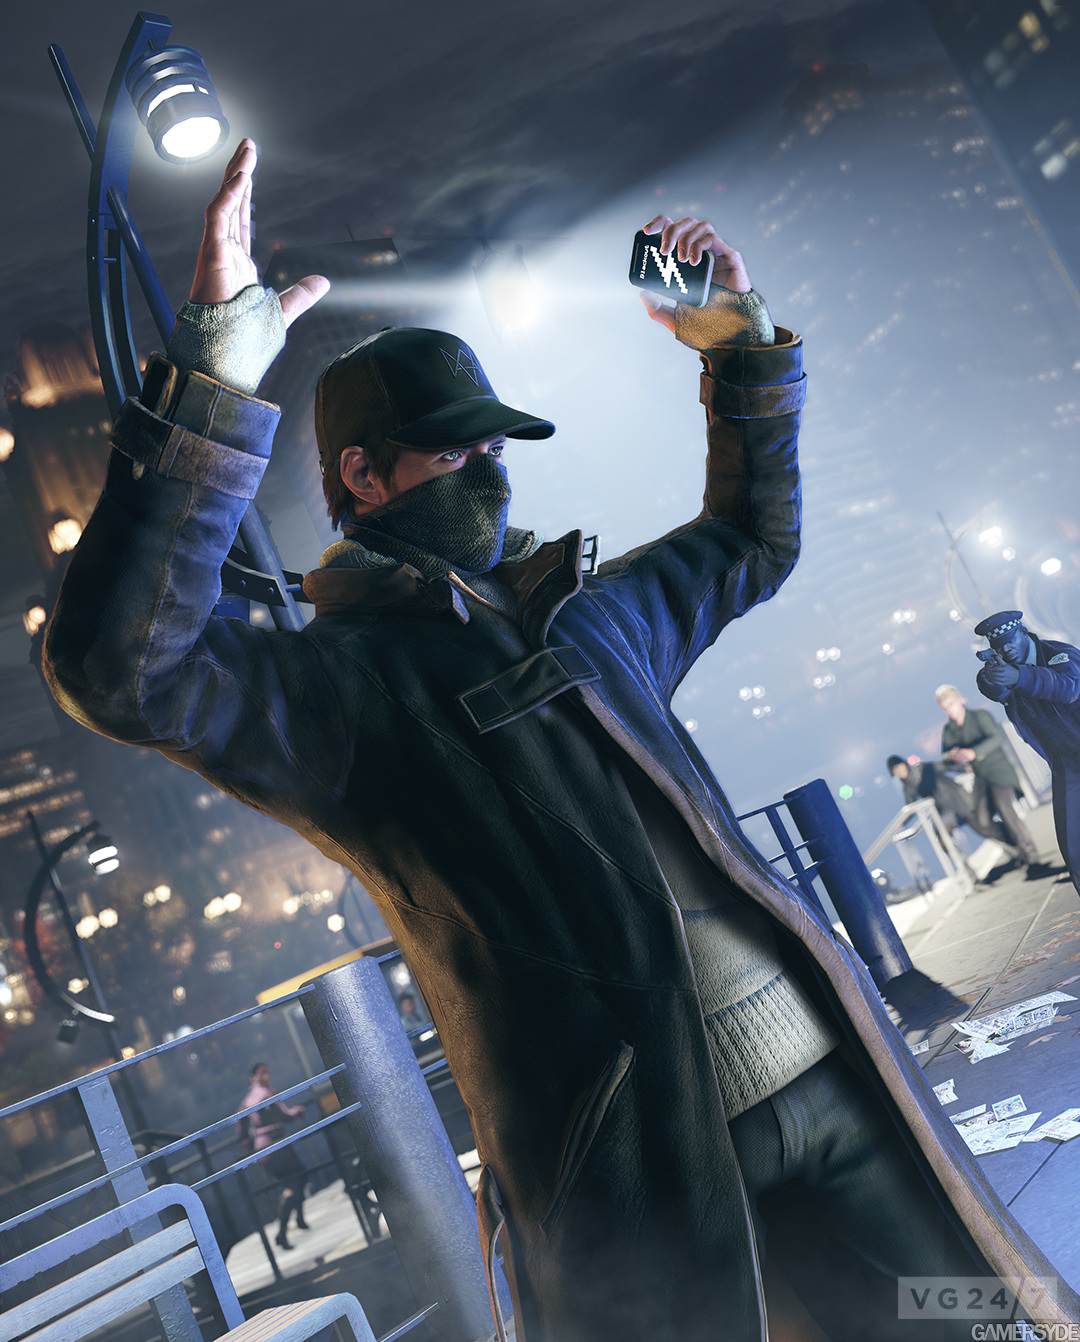 watch dogs 2 parents guide